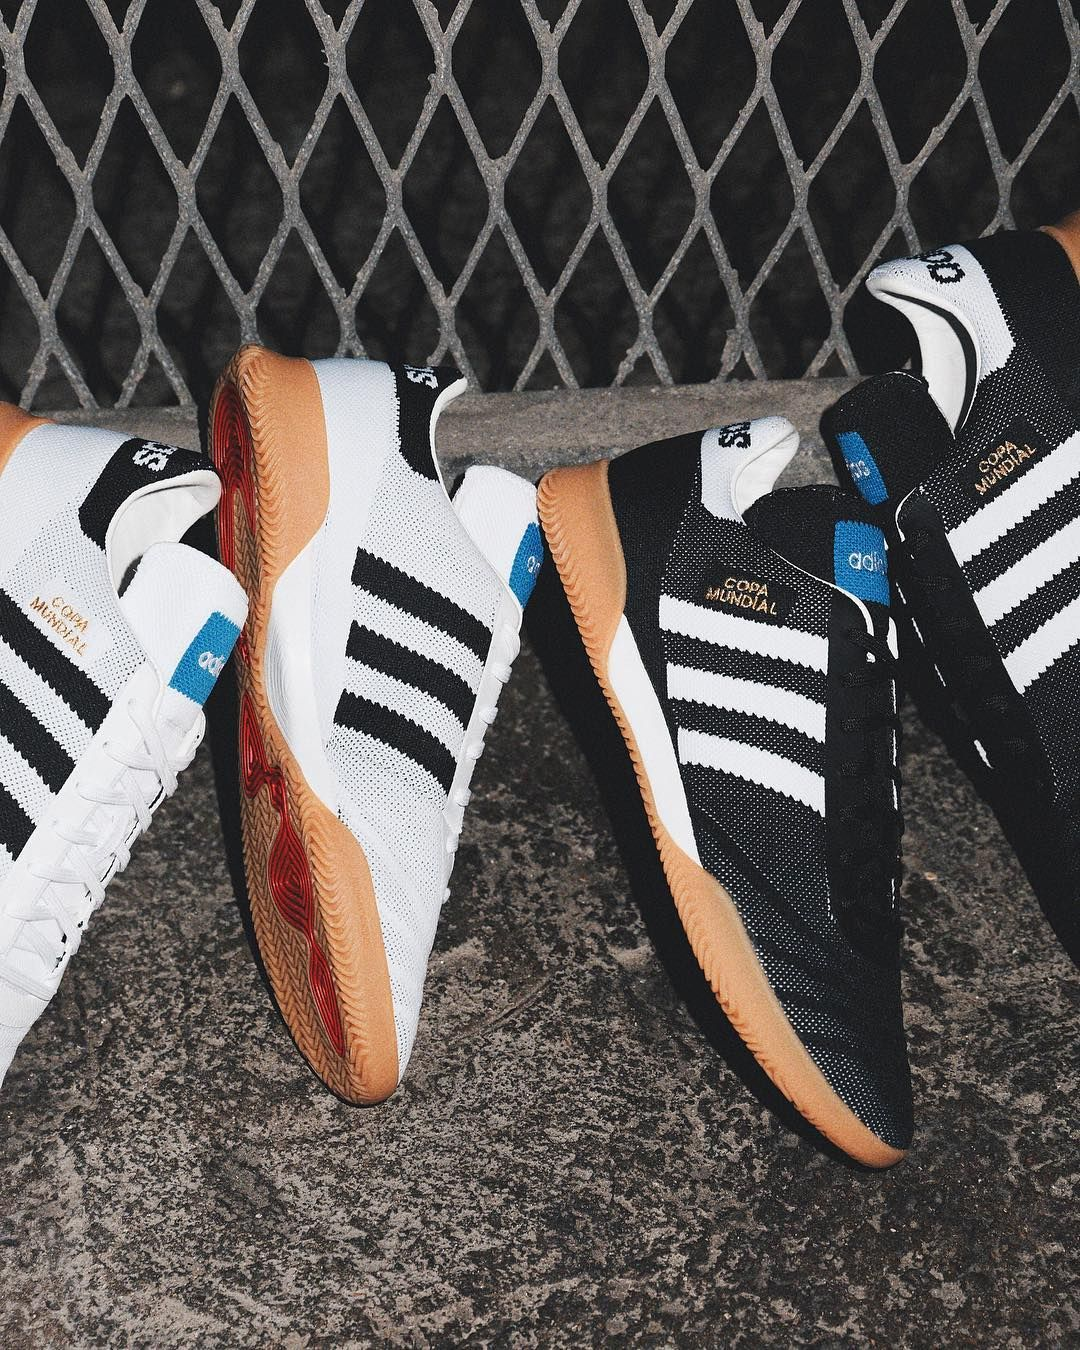 e3cf7f344 Past meets Primeknit.  adidasfootball drop two limited edition COPA 70Y  sneakers. See more online 📲 www.soccerbible.com  soccerbible…